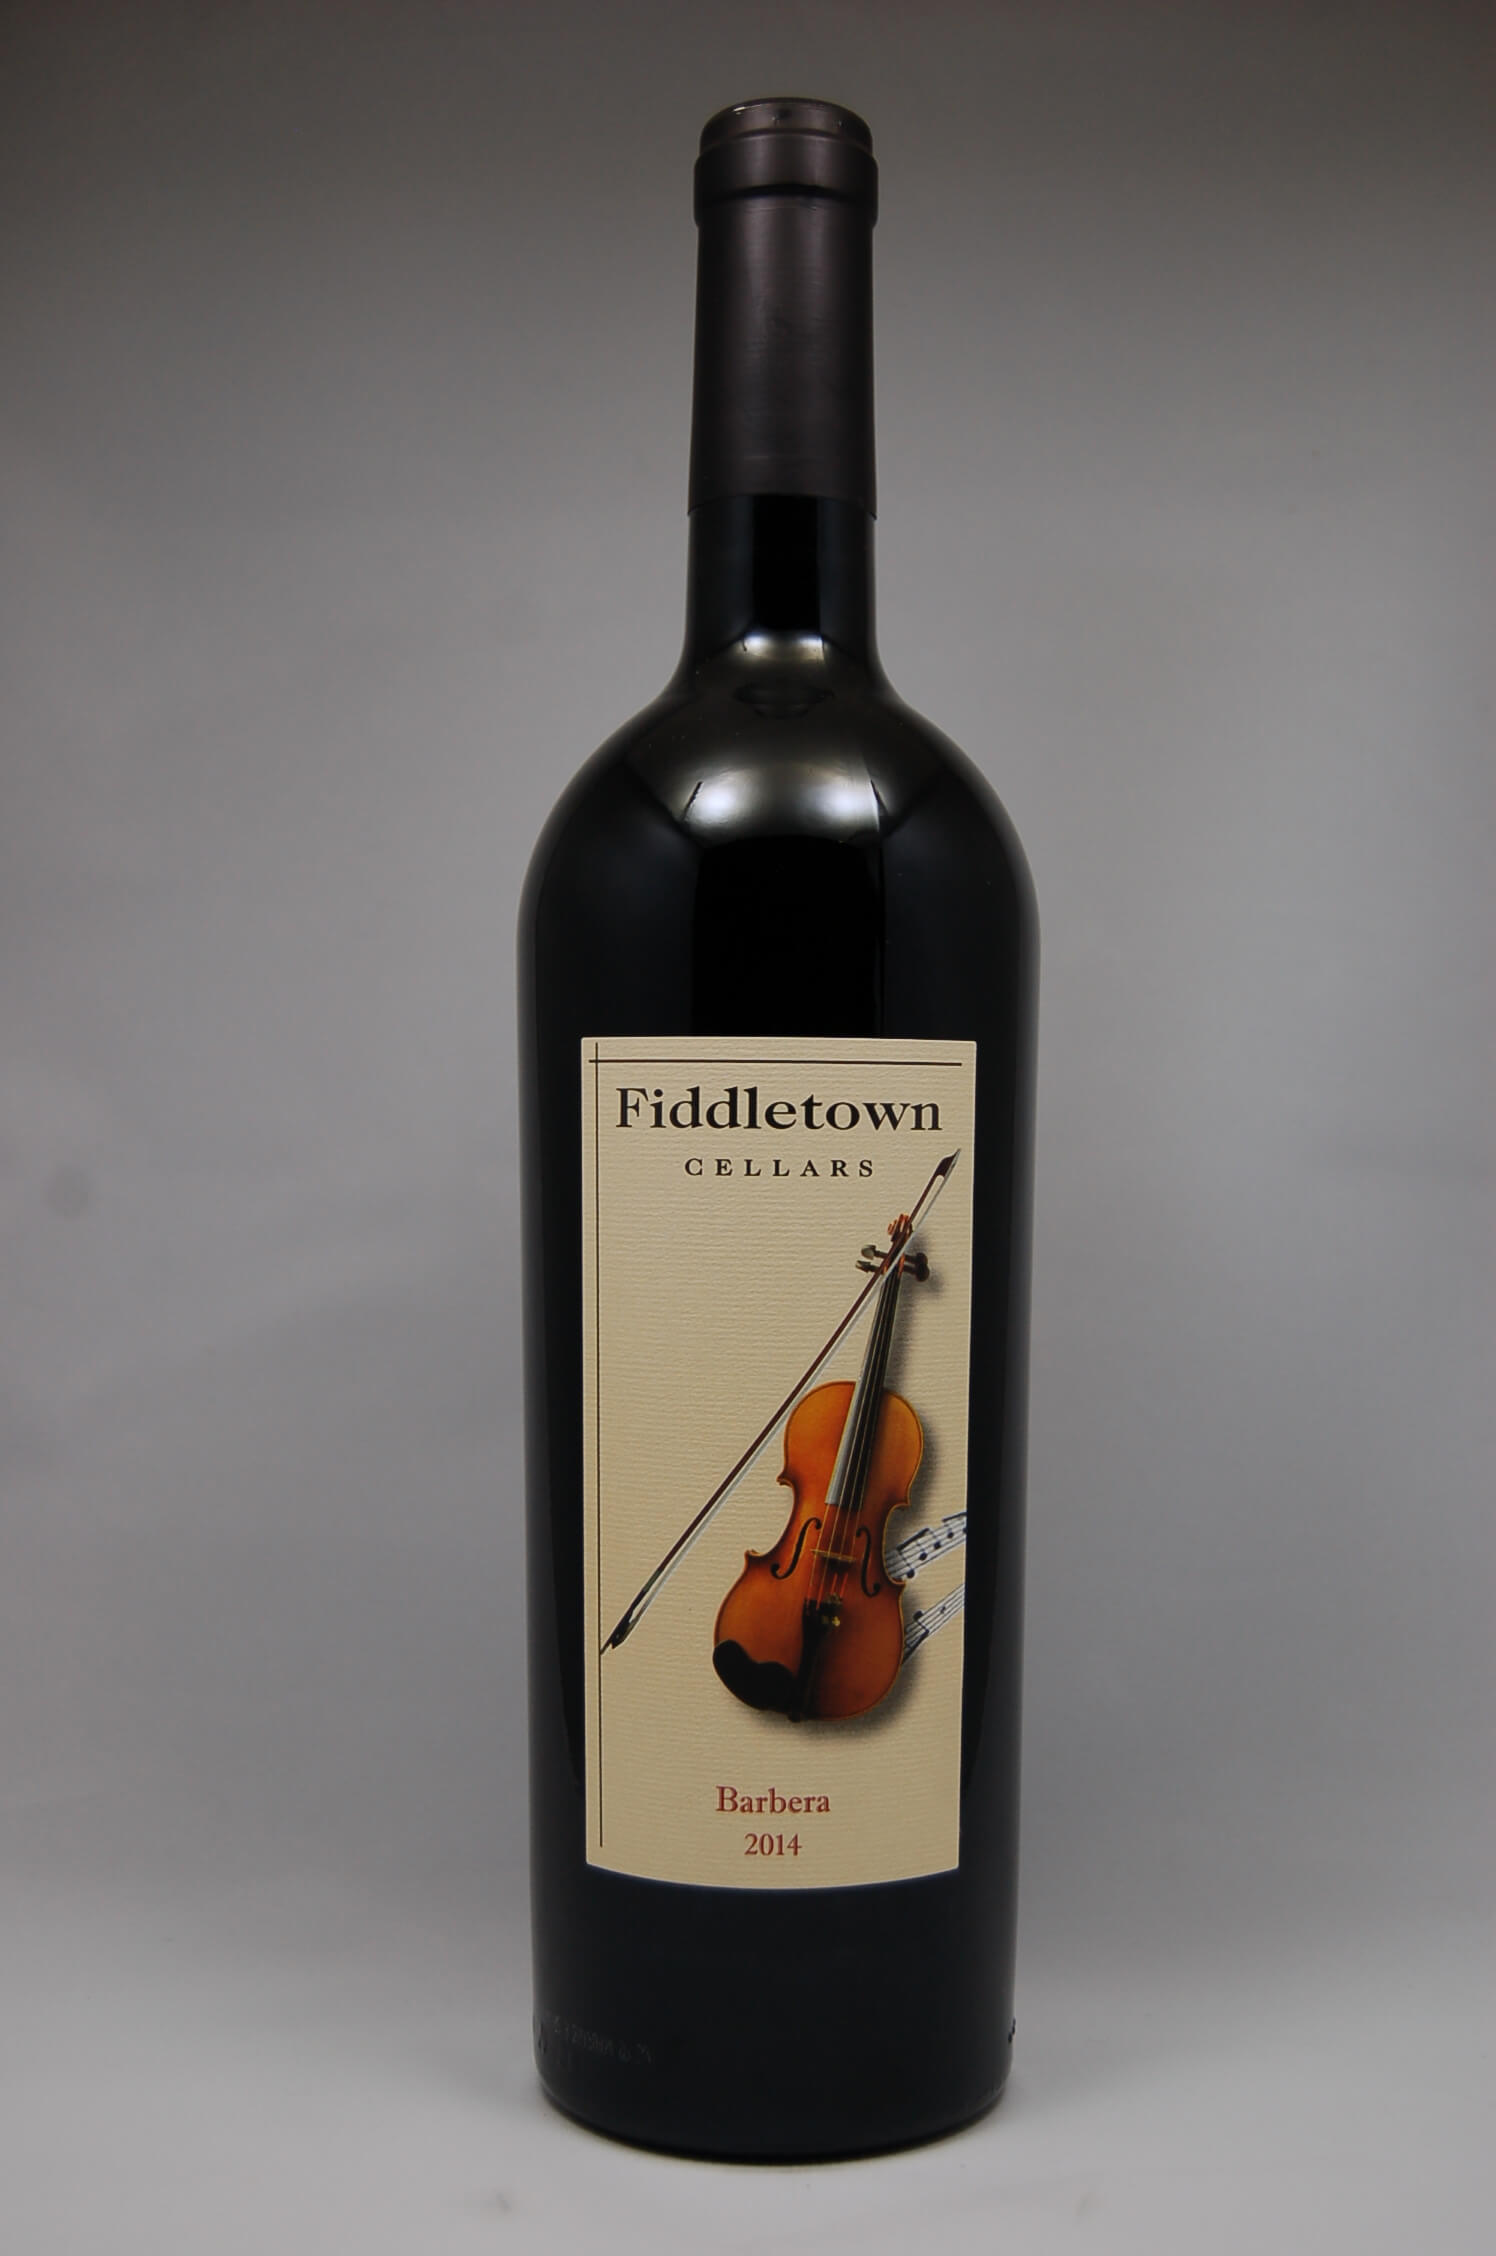 Fiddletown Cellars Barbera 2013